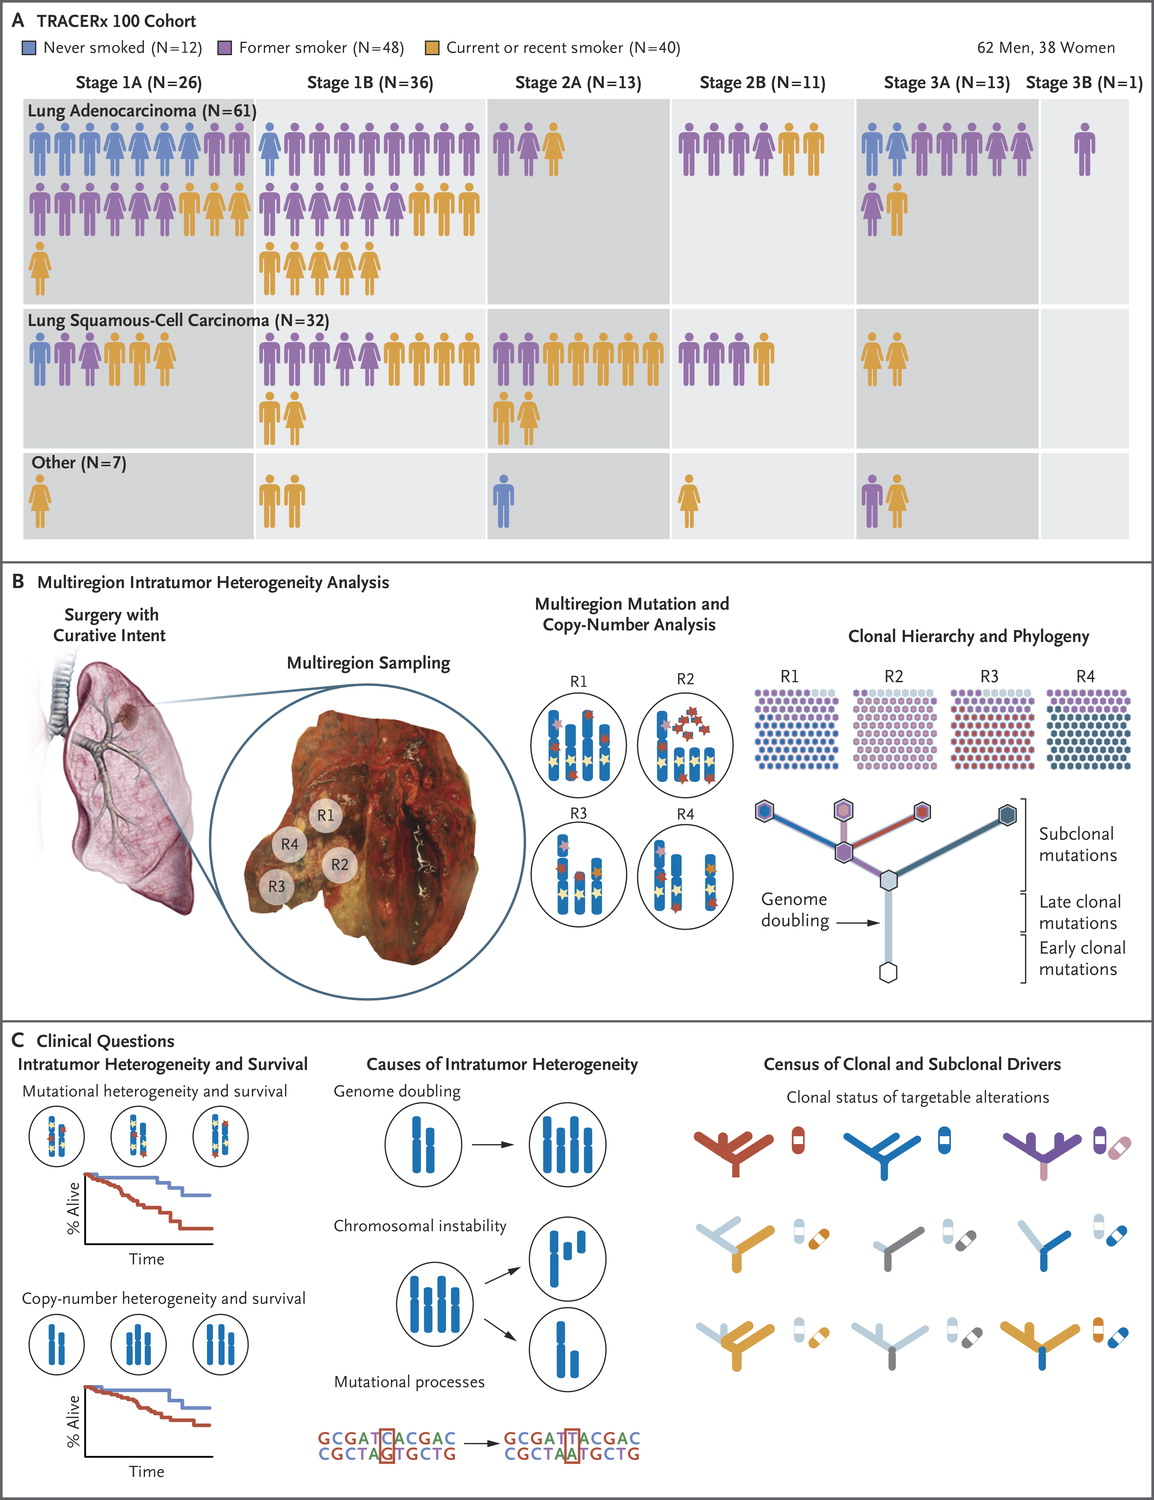 ARTICLE - Tracking the Evolution of Non–Small-Cell Lung Cancer